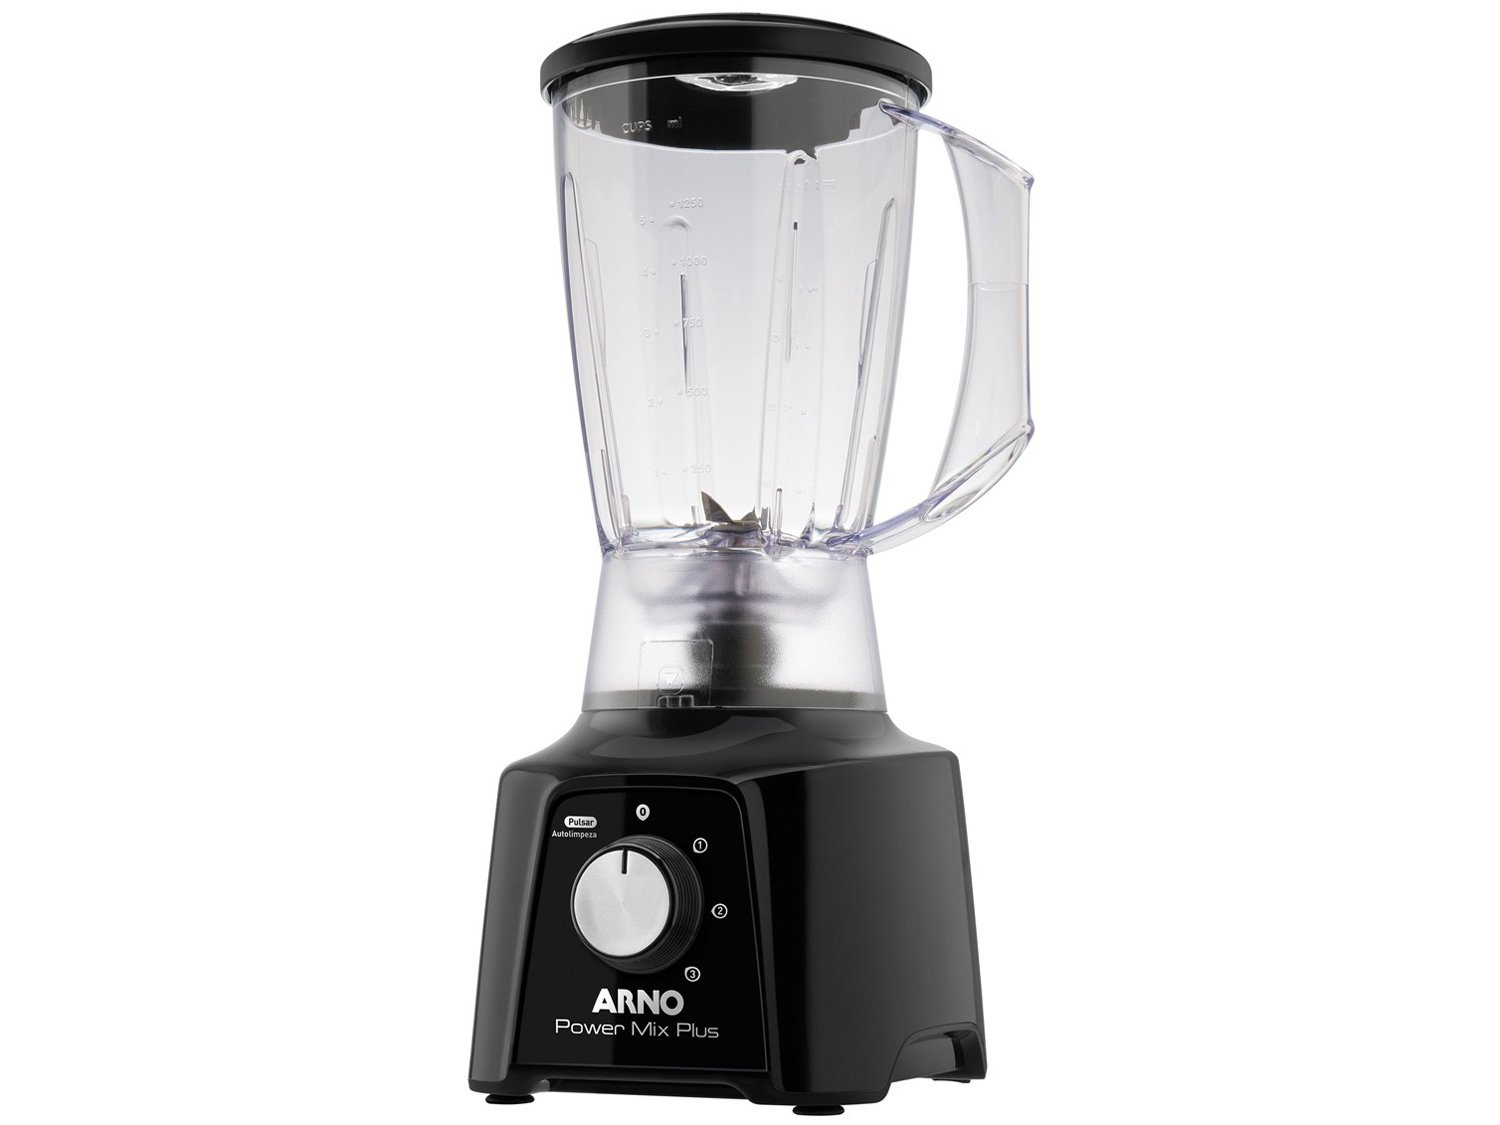 Liquidificador Arno Power Mix Plus LQ20 com 3 Velocidades 550W – Preto - 110V